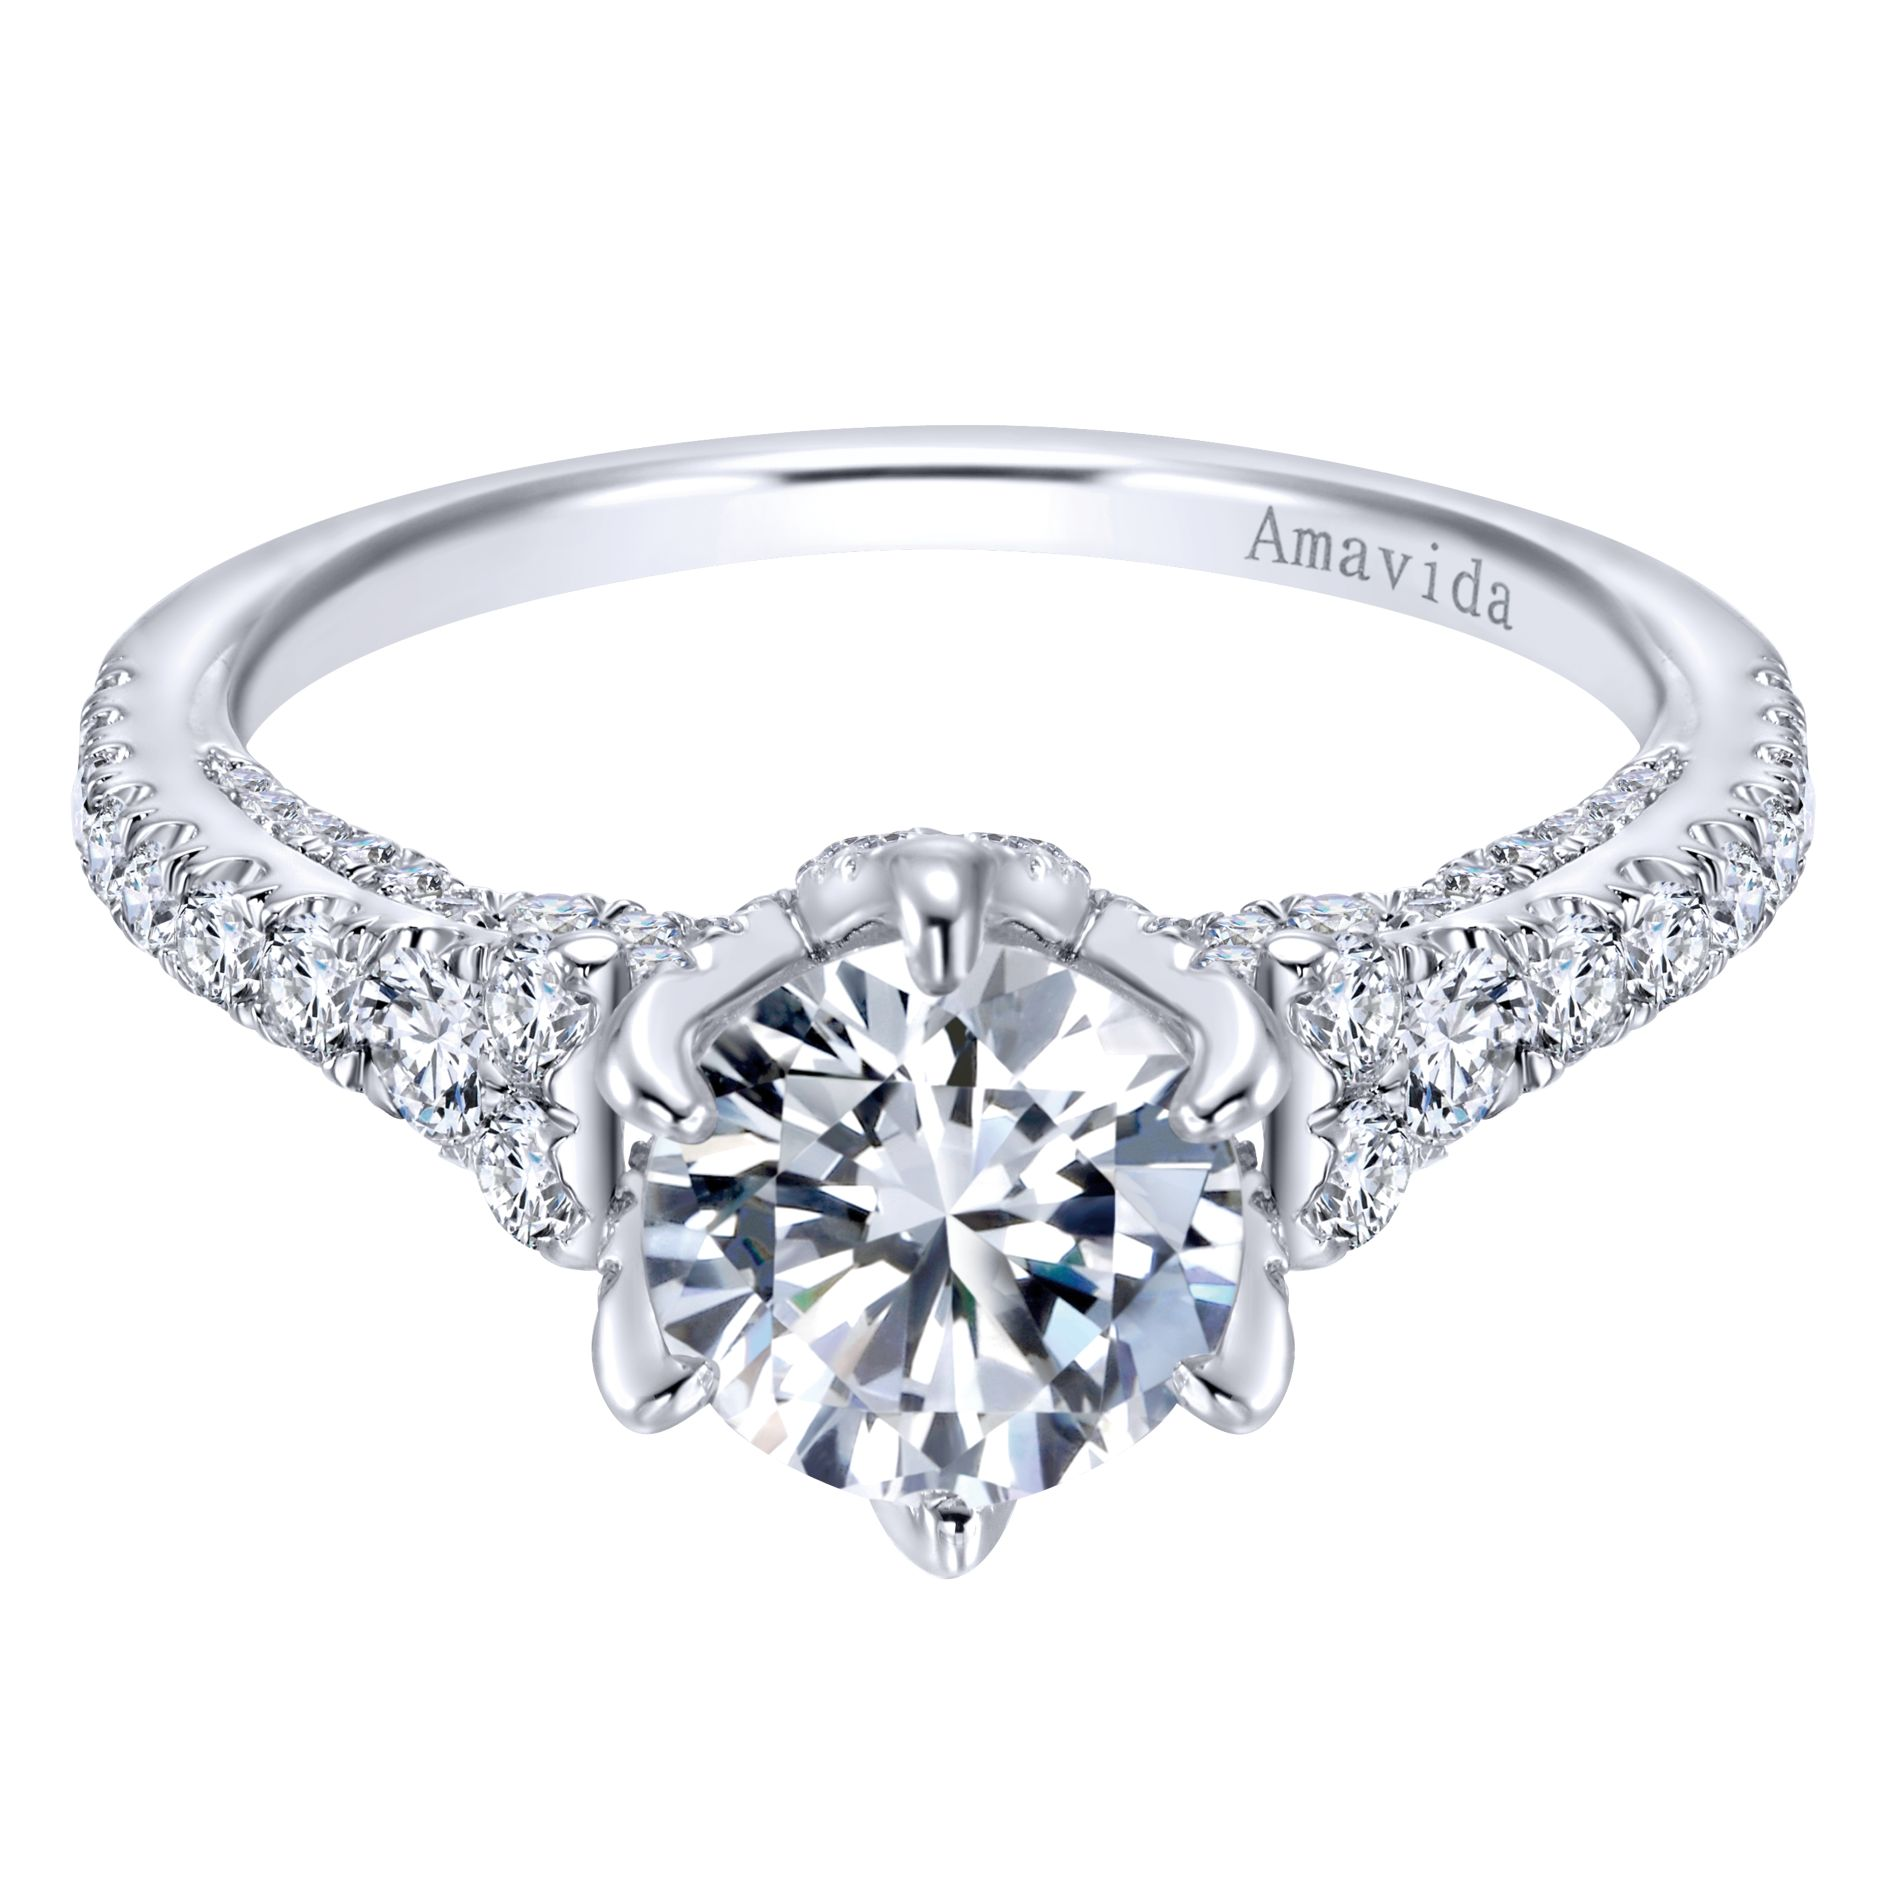 WHITE GOLD ROUND STRAIGHT DIAMOND ENGAGEMENT RING by Gabriel & Co